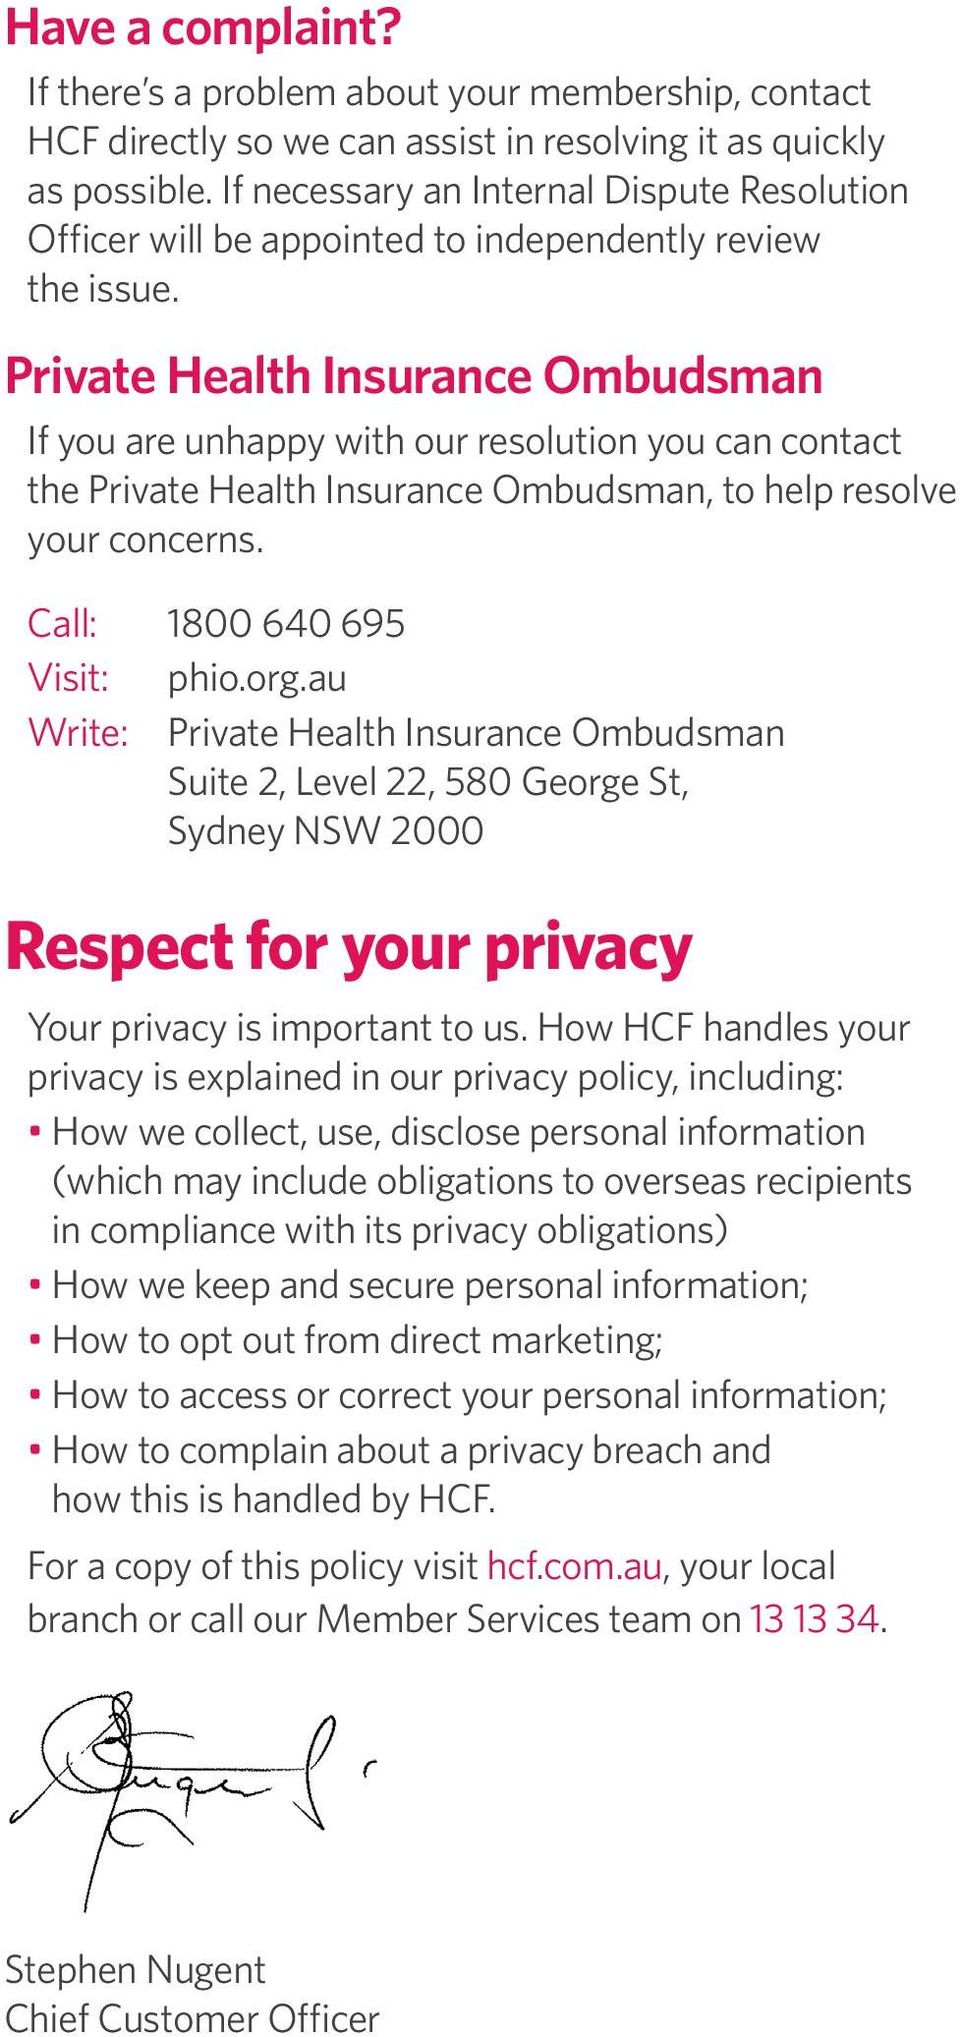 Private Health Insurance Ombudsman If you are unhappy with our resolution you can contact the Private Health Insurance Ombudsman, to help resolve your concerns. Call: 1800 640 695 Visit: phio.org.